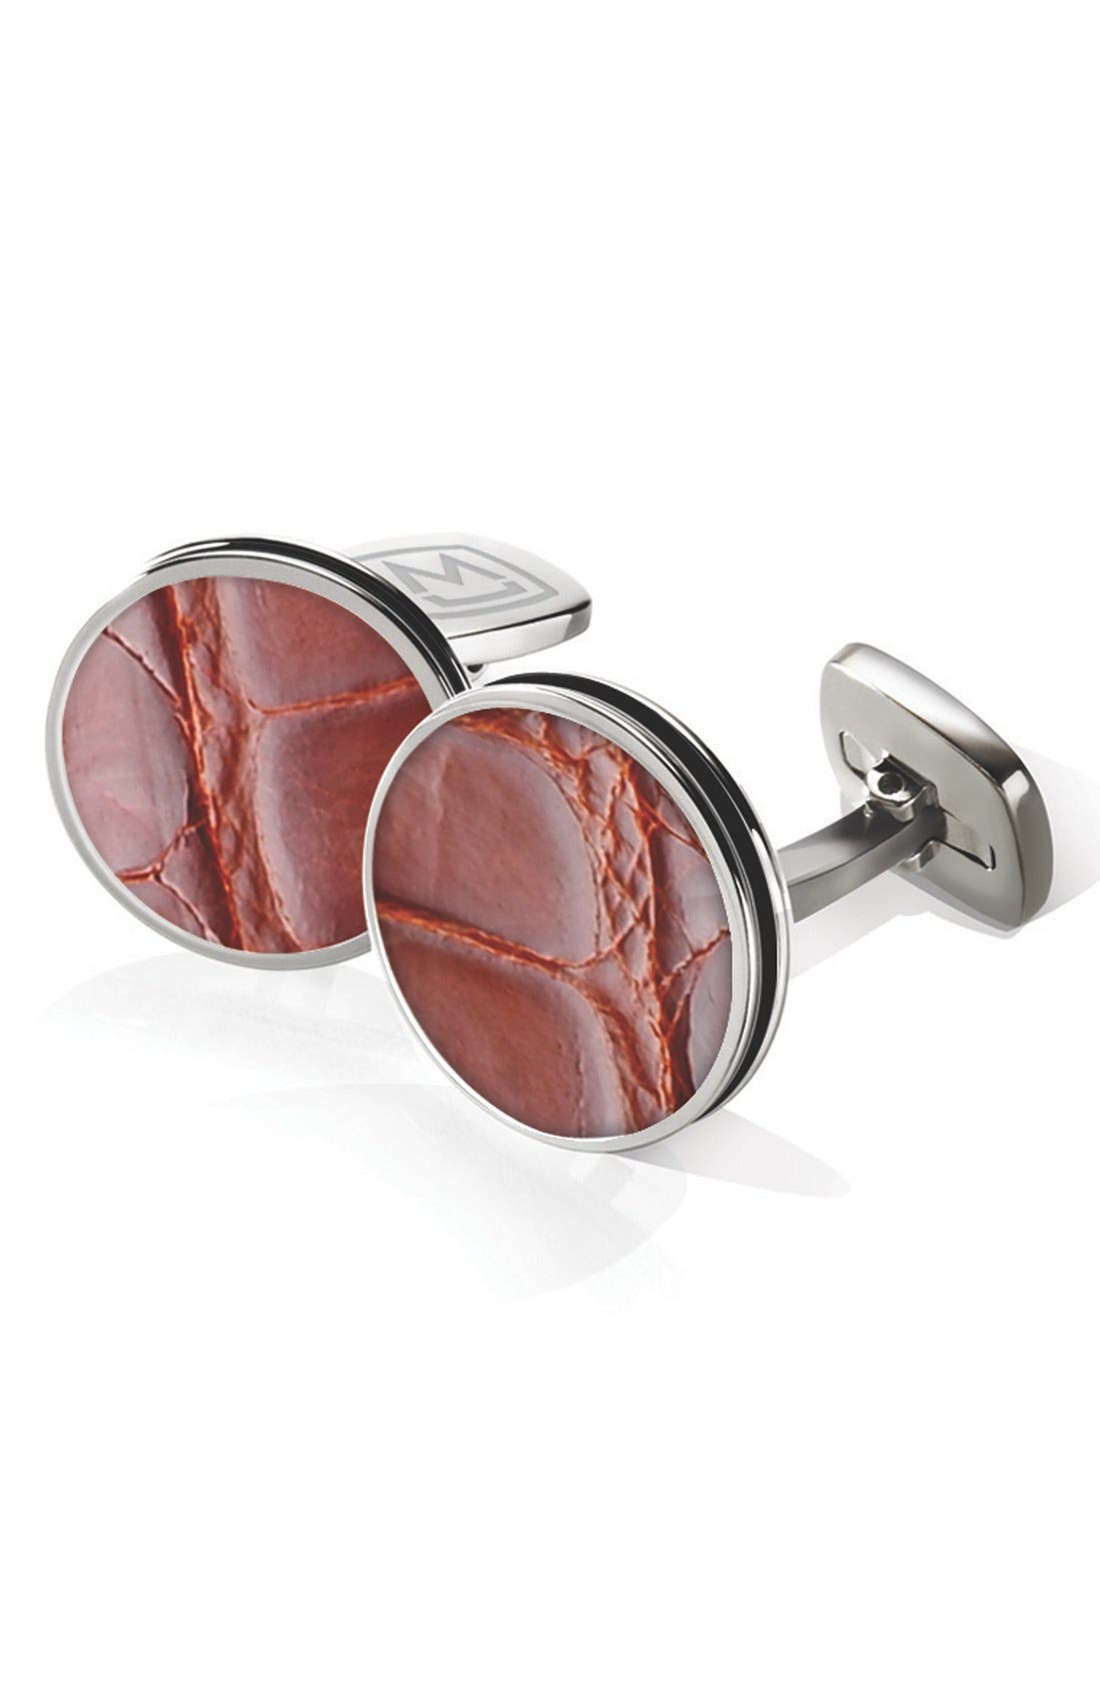 Main Image - M-Clip® Alligator Cuff Links